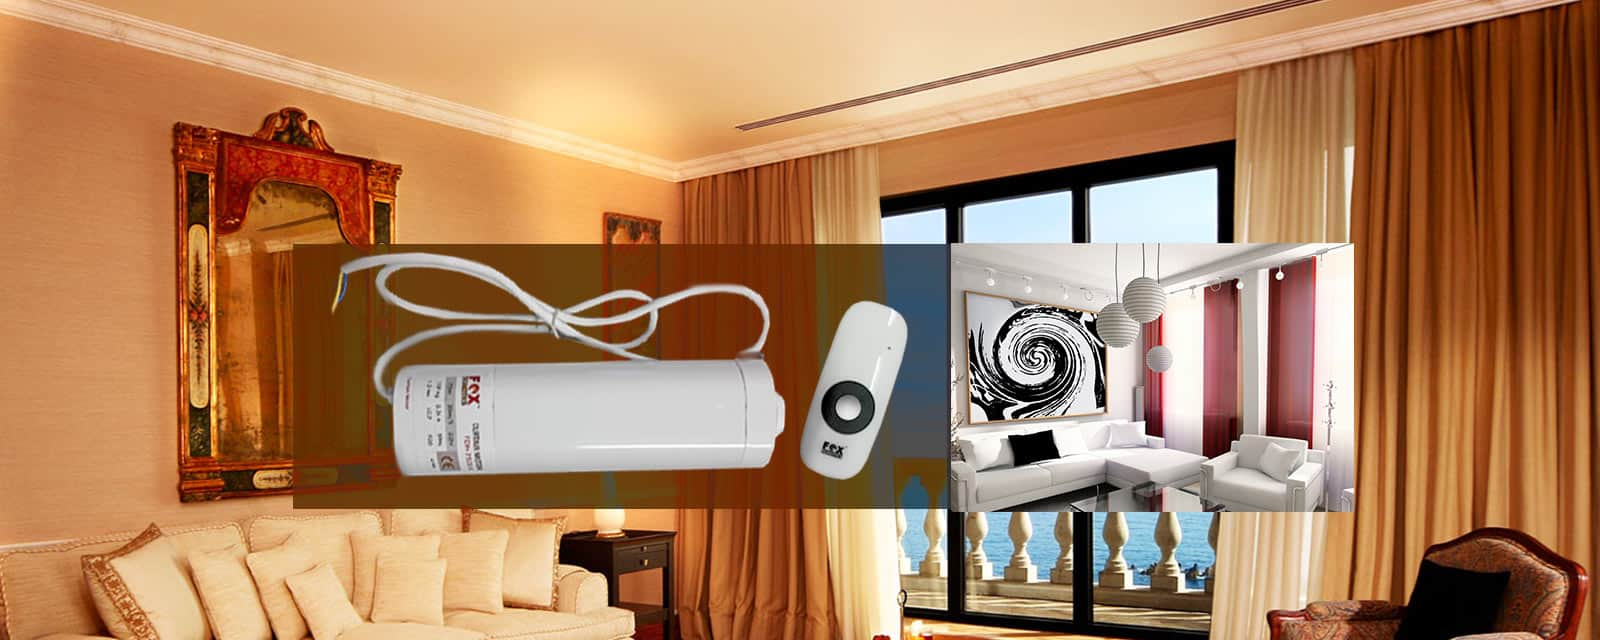 Curtain Motors